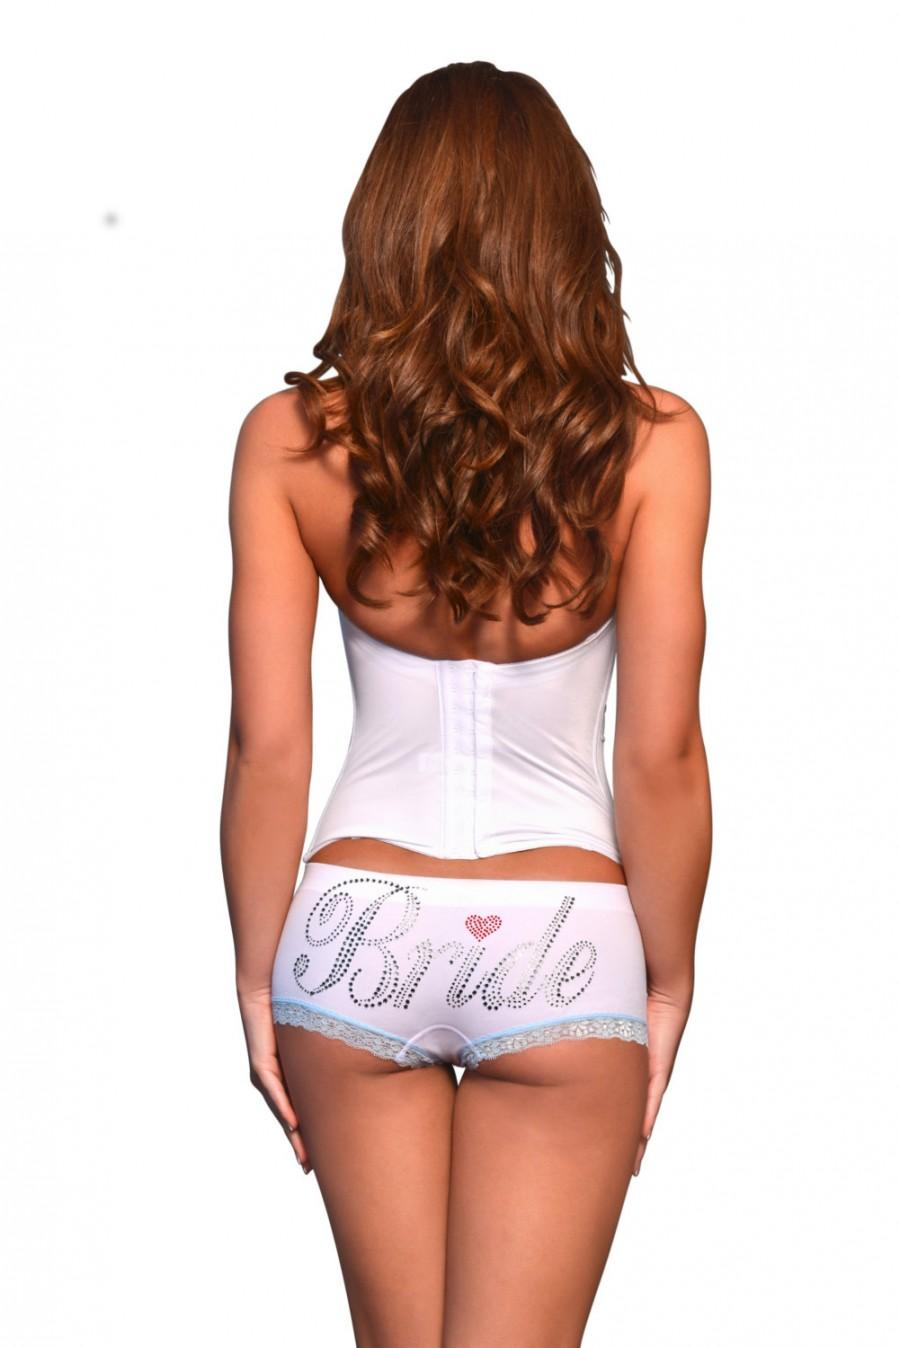 Mariage - Bride Underwear White and Blue with Rhinestone Bride wedding day underwear